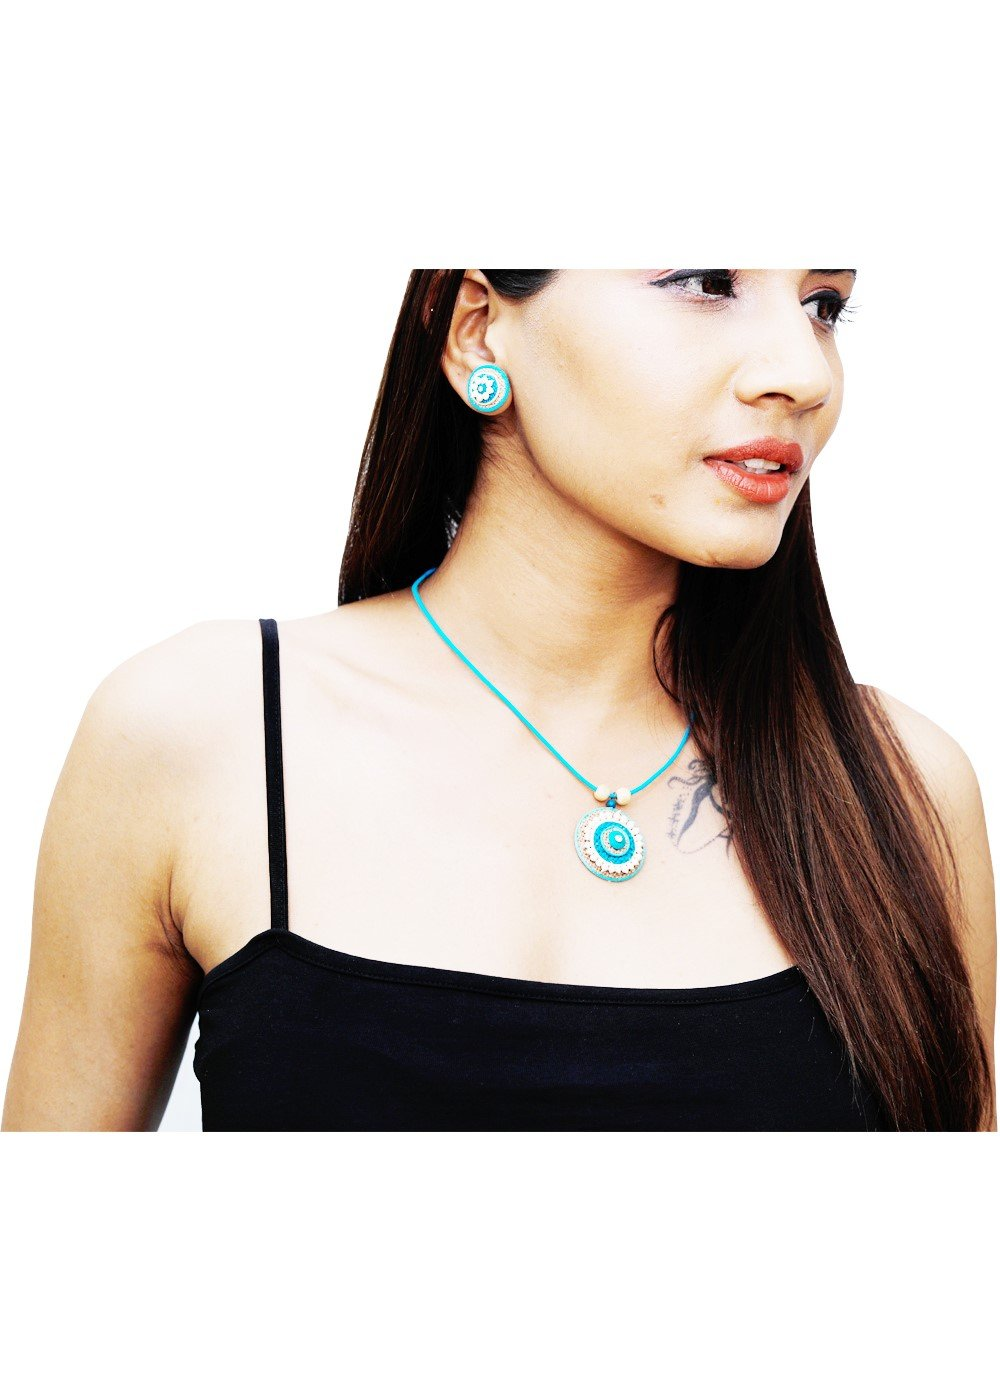 Jute Necklet Turquoise Round